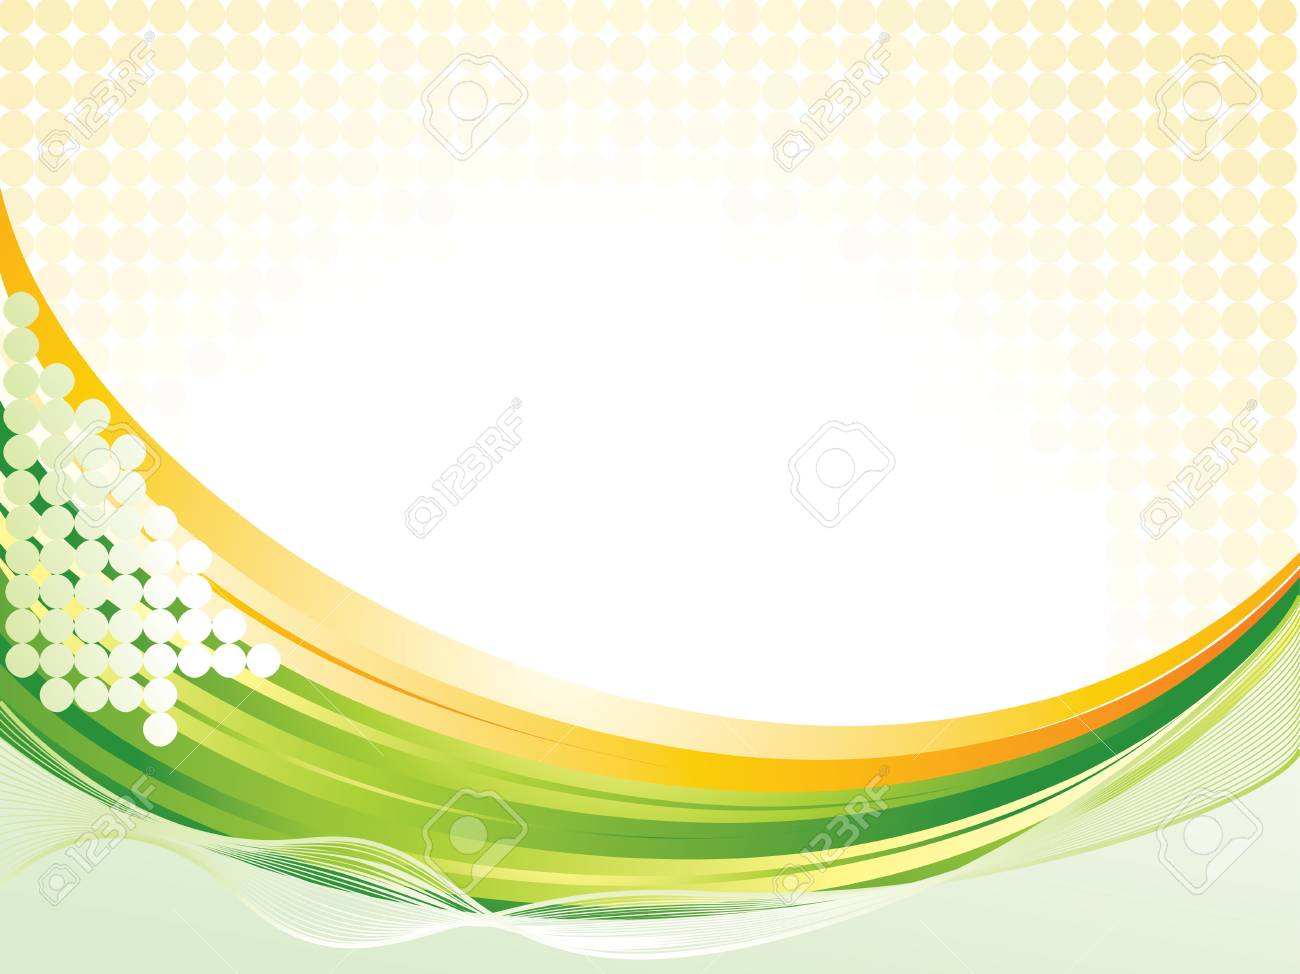 Wave pattern background Stock Vector - 14846358